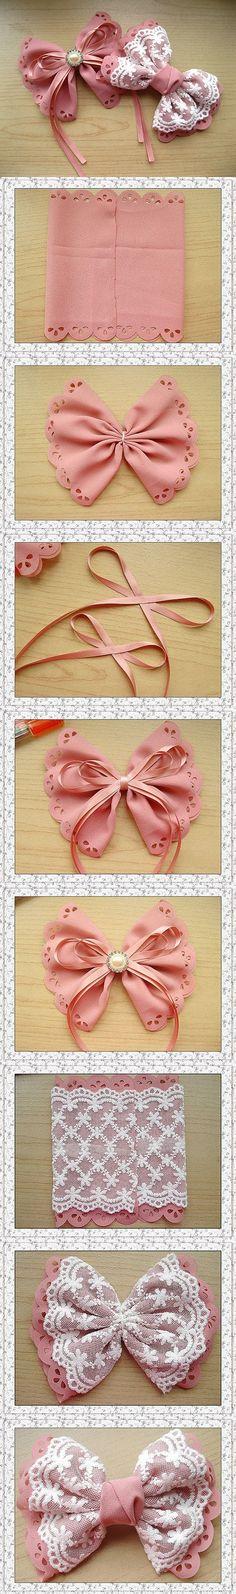 DIY hair bows by fiddle-dee-dee